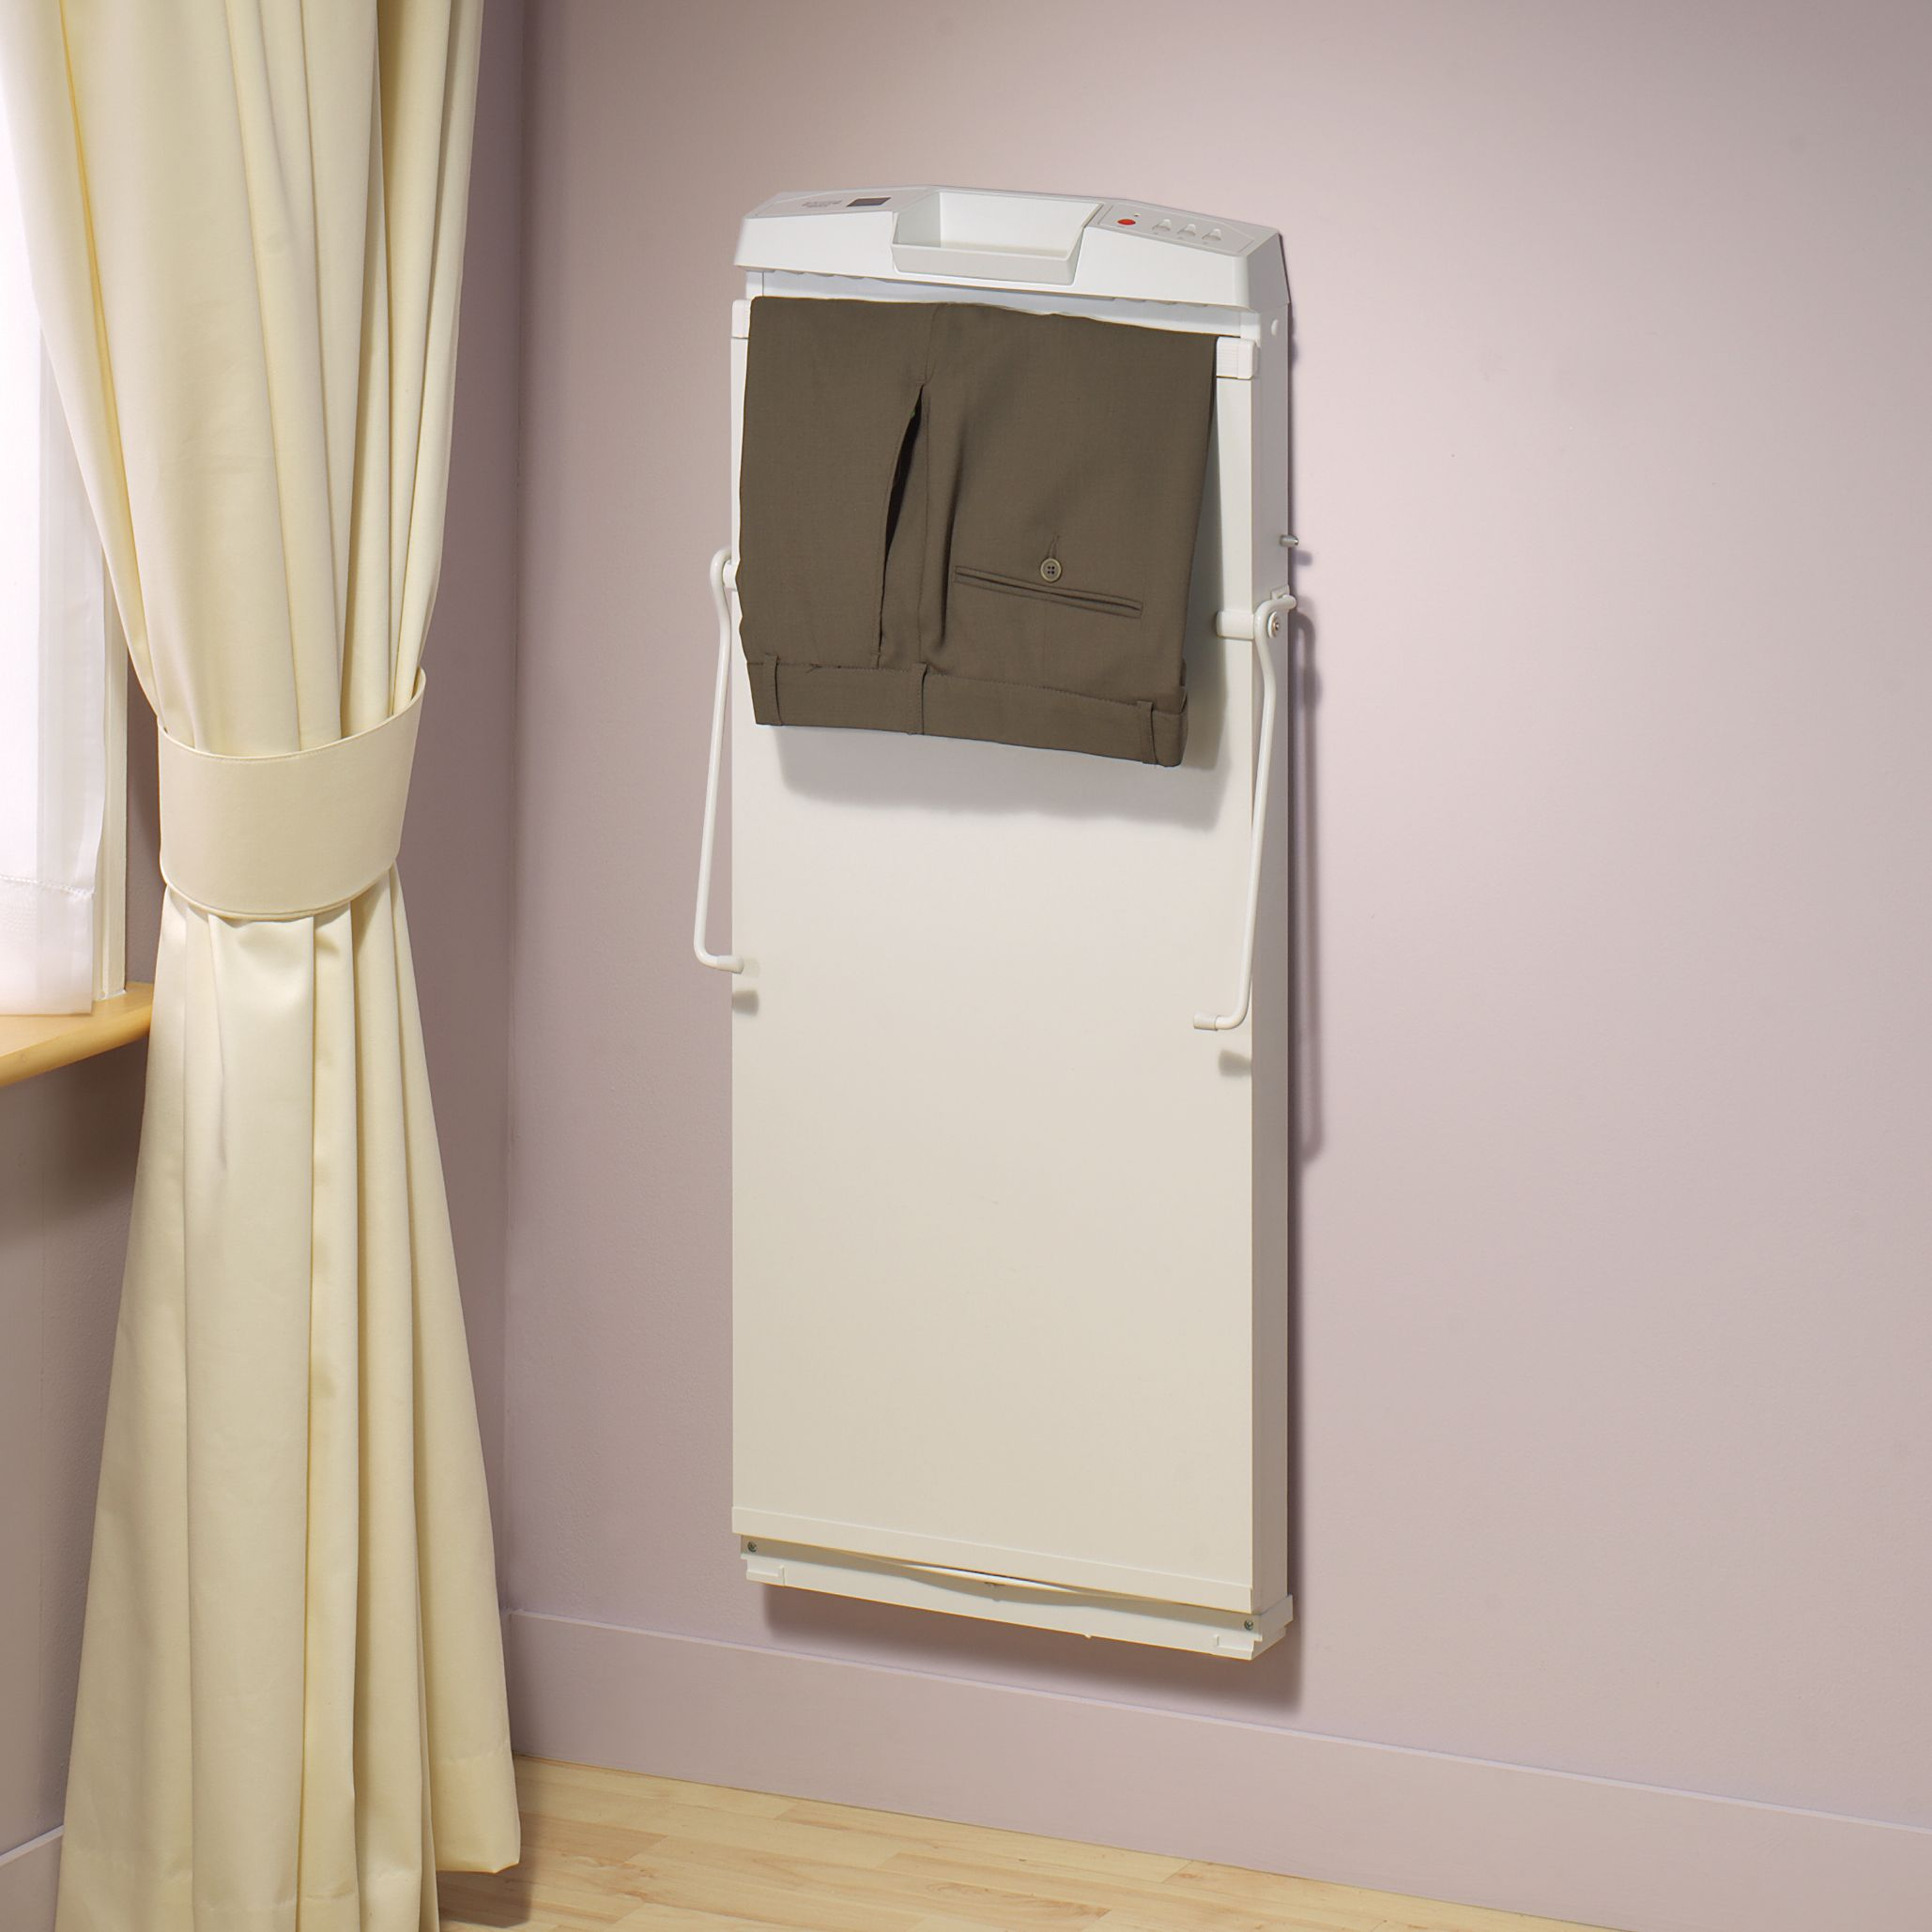 Corby Trouser Press White 7700 At John Lewis Partners